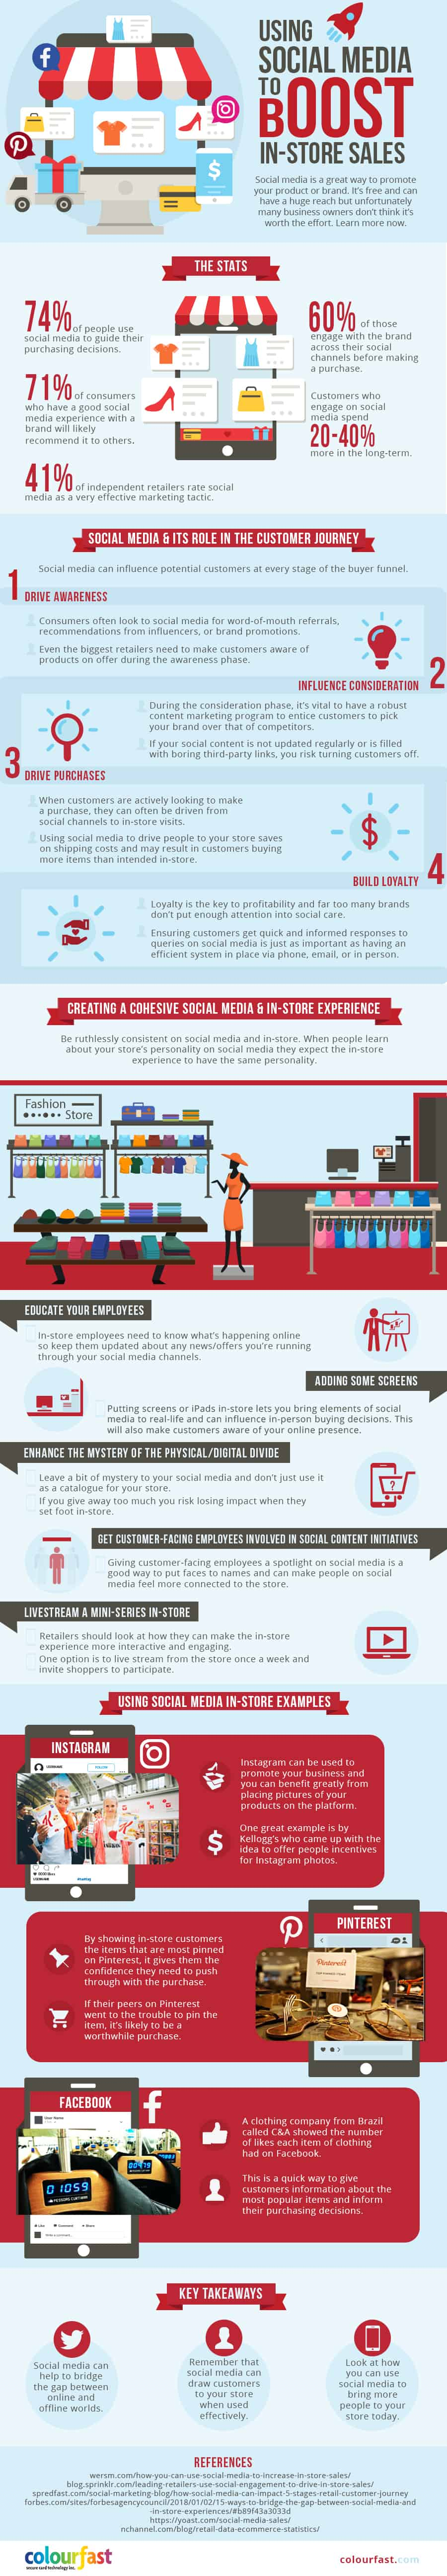 using social media to boost in store sales infographic